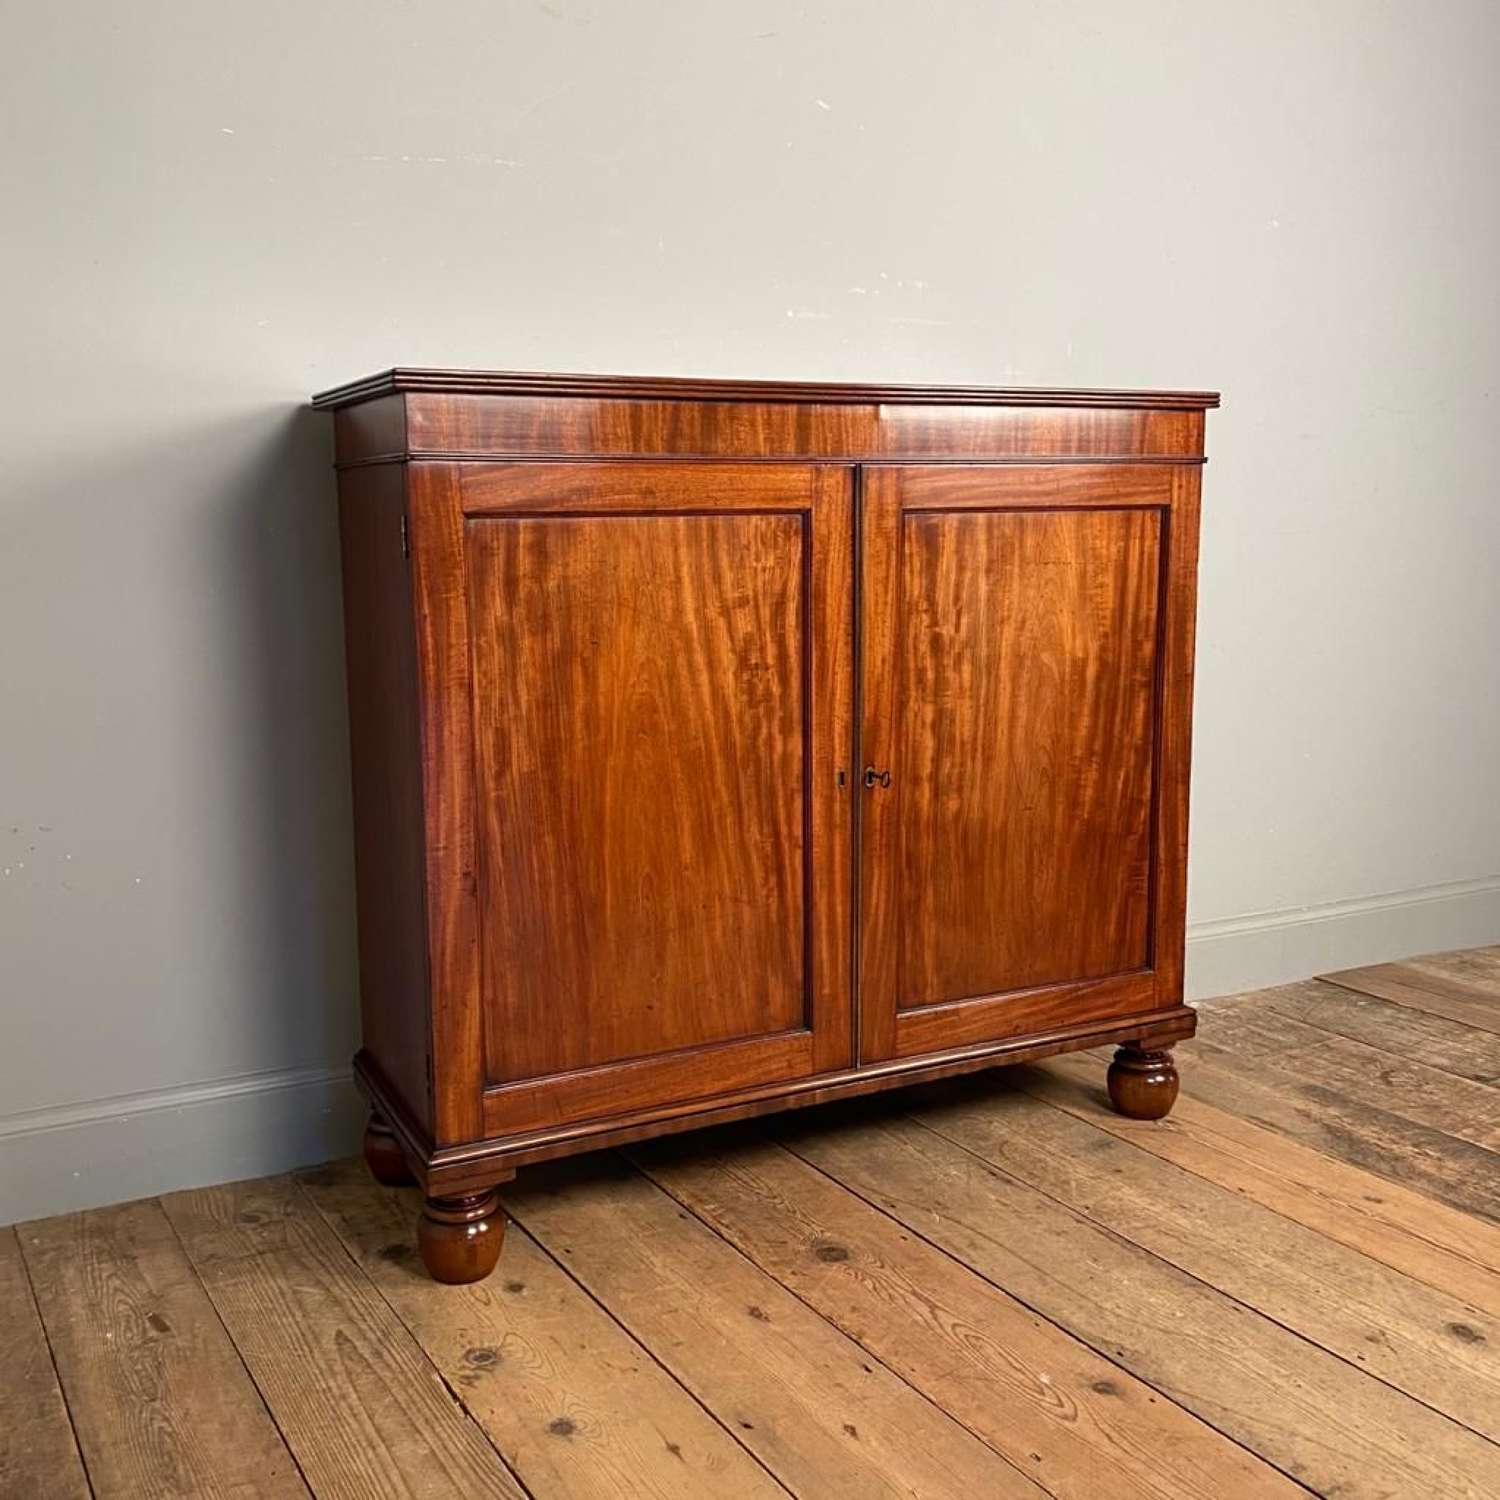 George III Mahogany Dwarf Side Cabinet - In the manner of Gillows